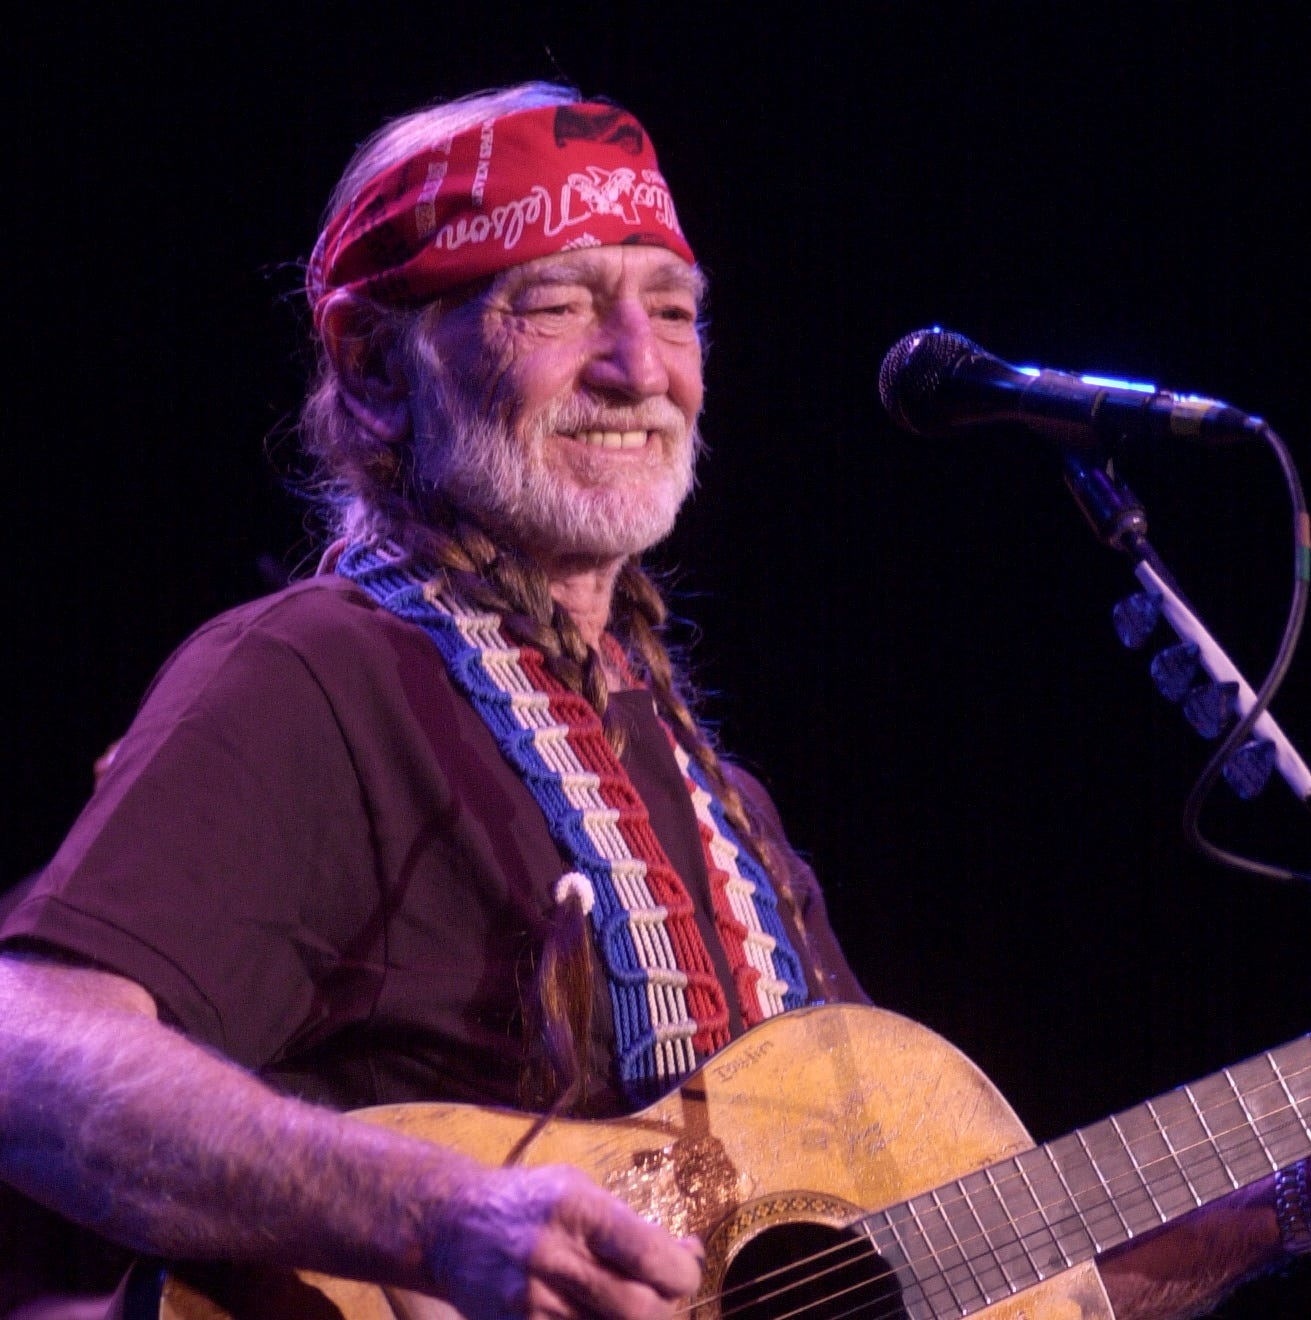 Get your tickets for Willie Nelson's El Paso concert Thursday